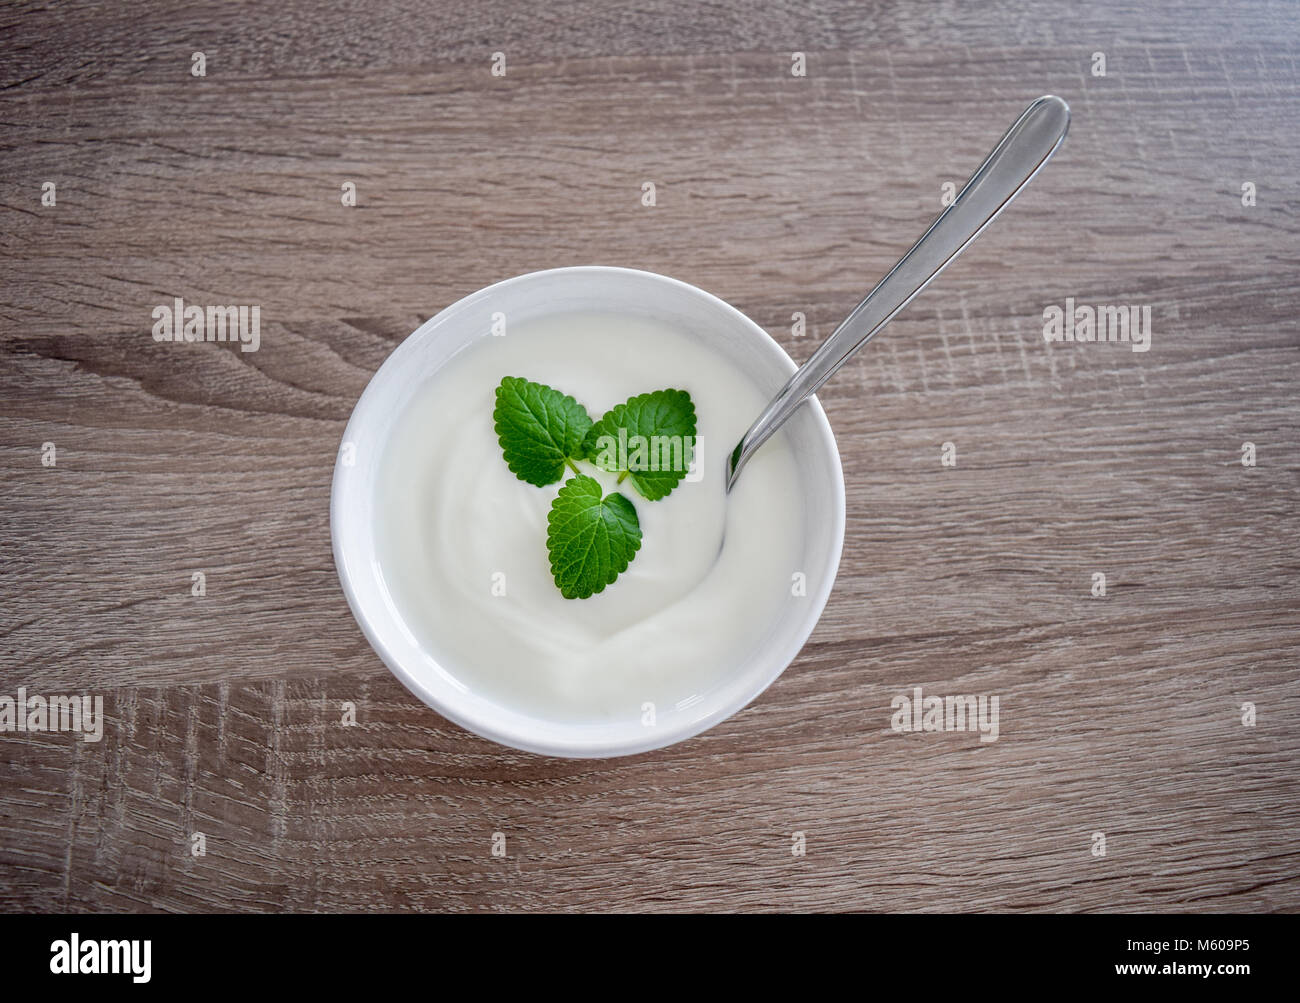 Ceramic bowl of white yogurt with mint leaves as decoration and spoon inside isolated on vintage rustic wooden table - Stock Image